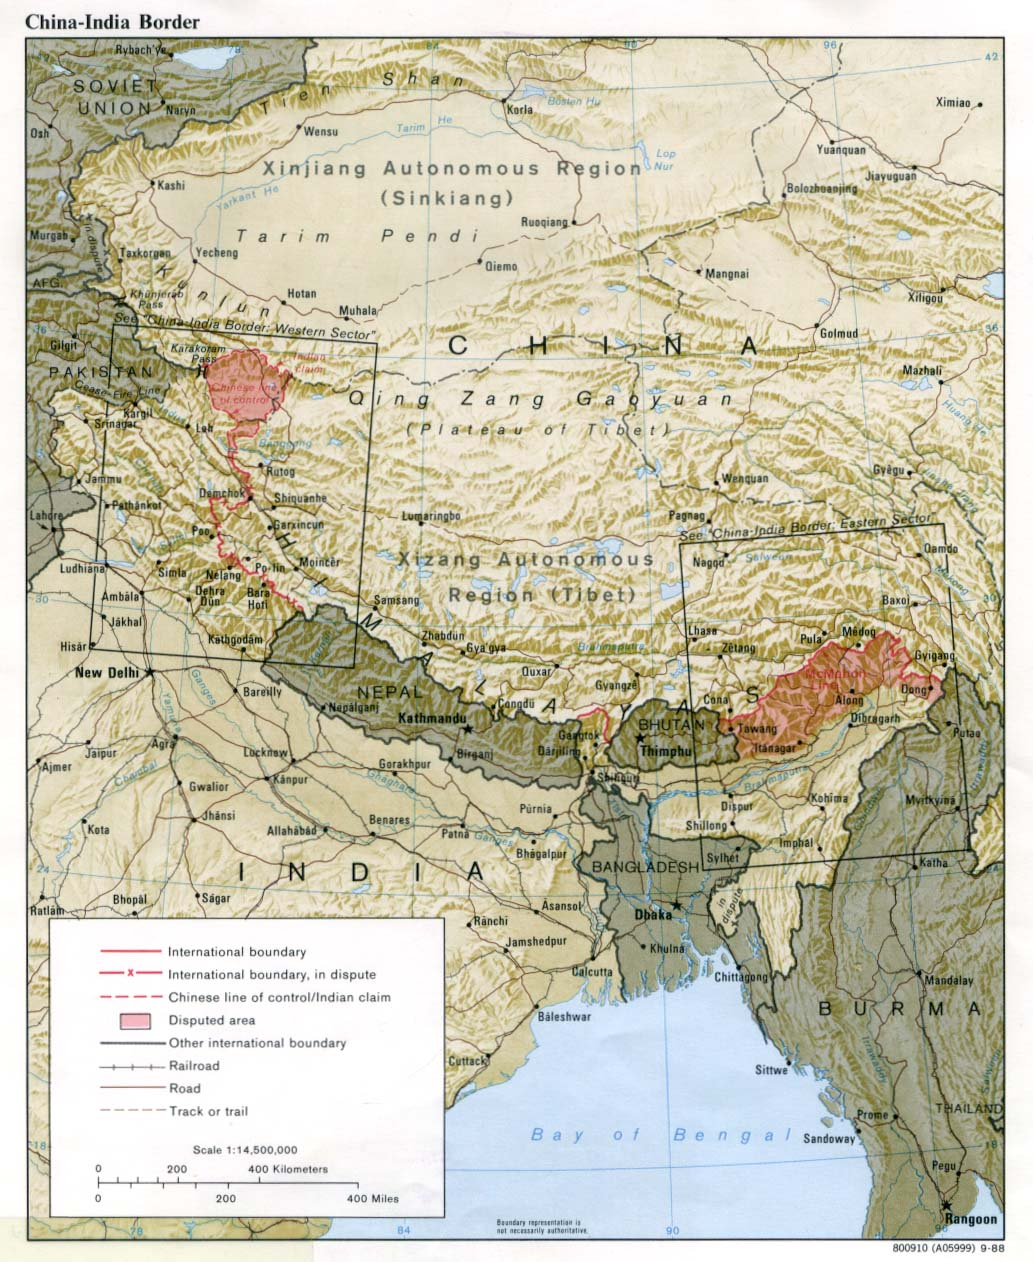 'India-China Border' 